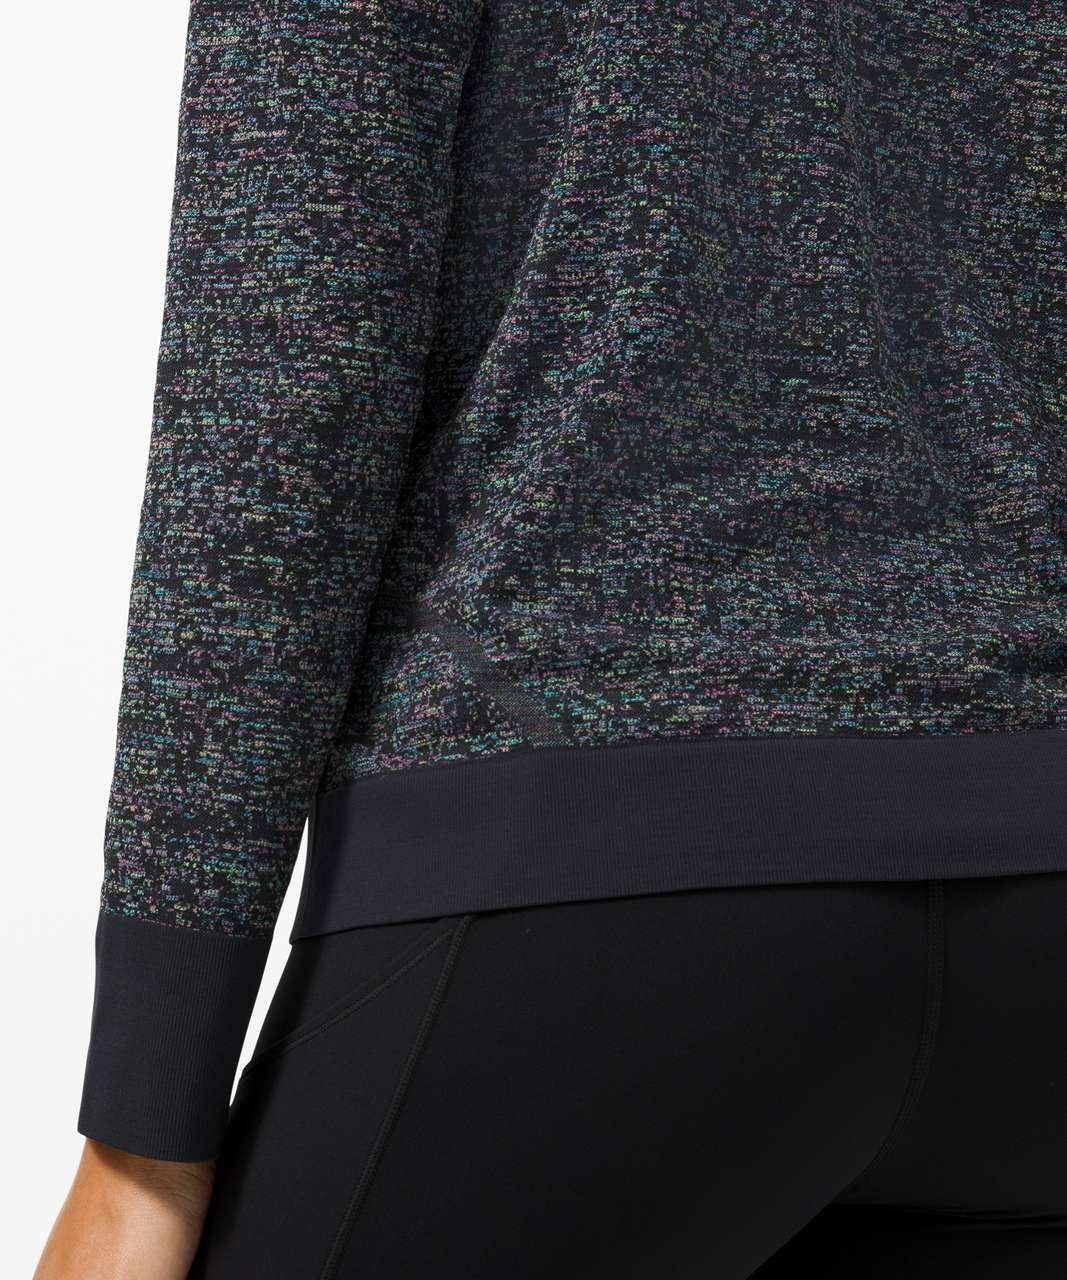 Lululemon Swiftly Breathe Long Sleeve - Pixel Check Black / Highlight Multi